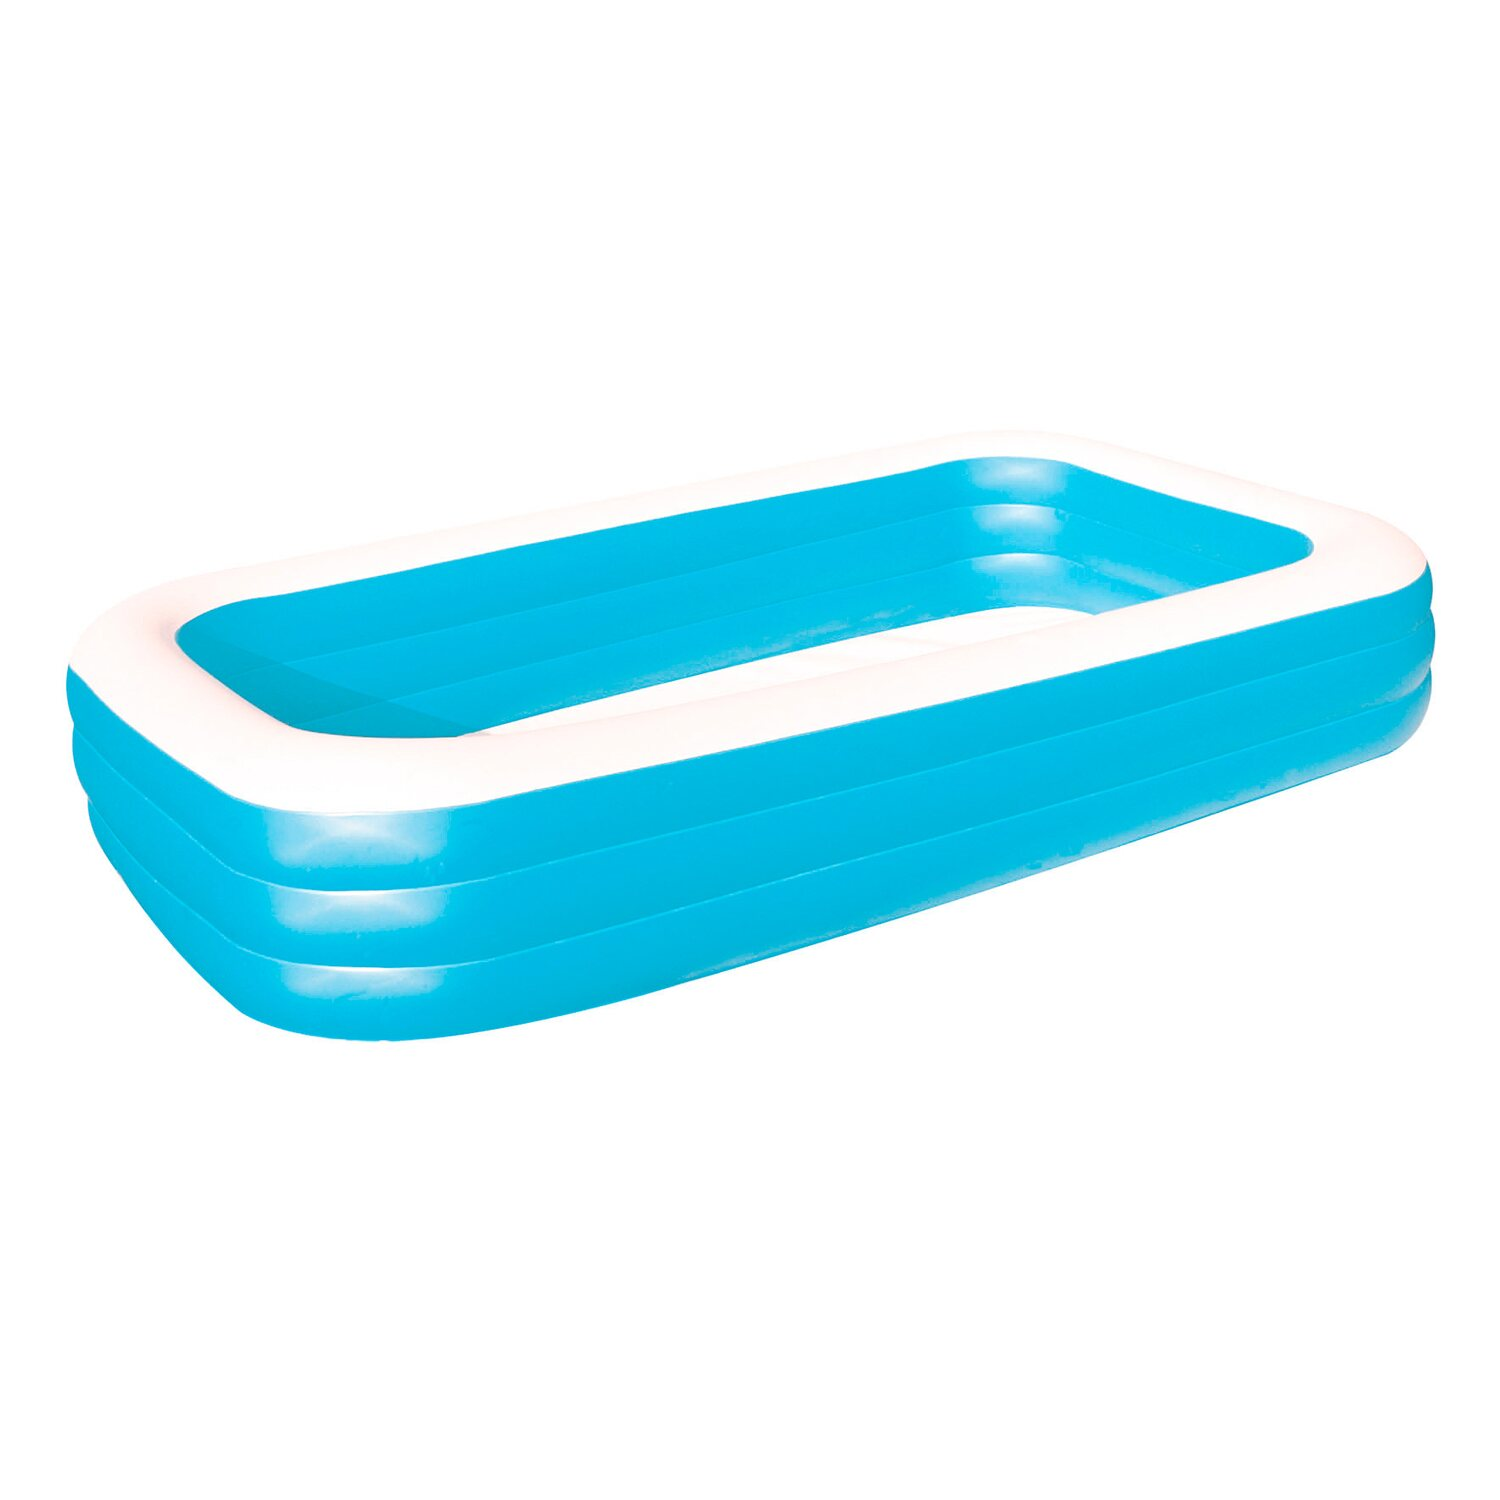 Bestway swimming pool family kaufen bei obi for Pool obi baumarkt